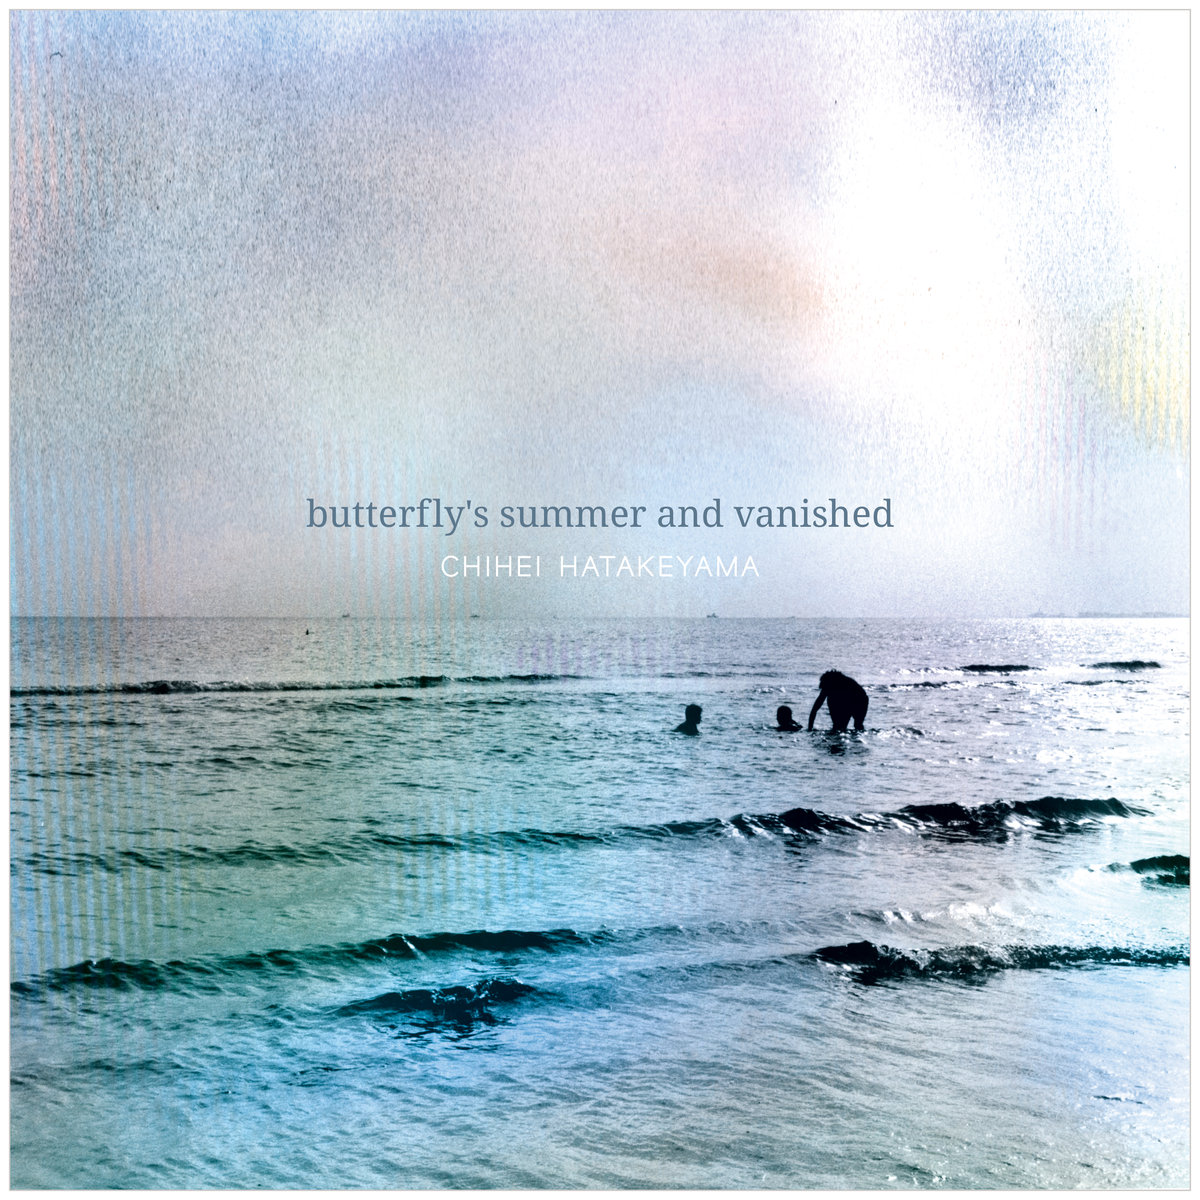 Chihei Hatakeyama - Butterfly's Summer and Vanished (White Paddy